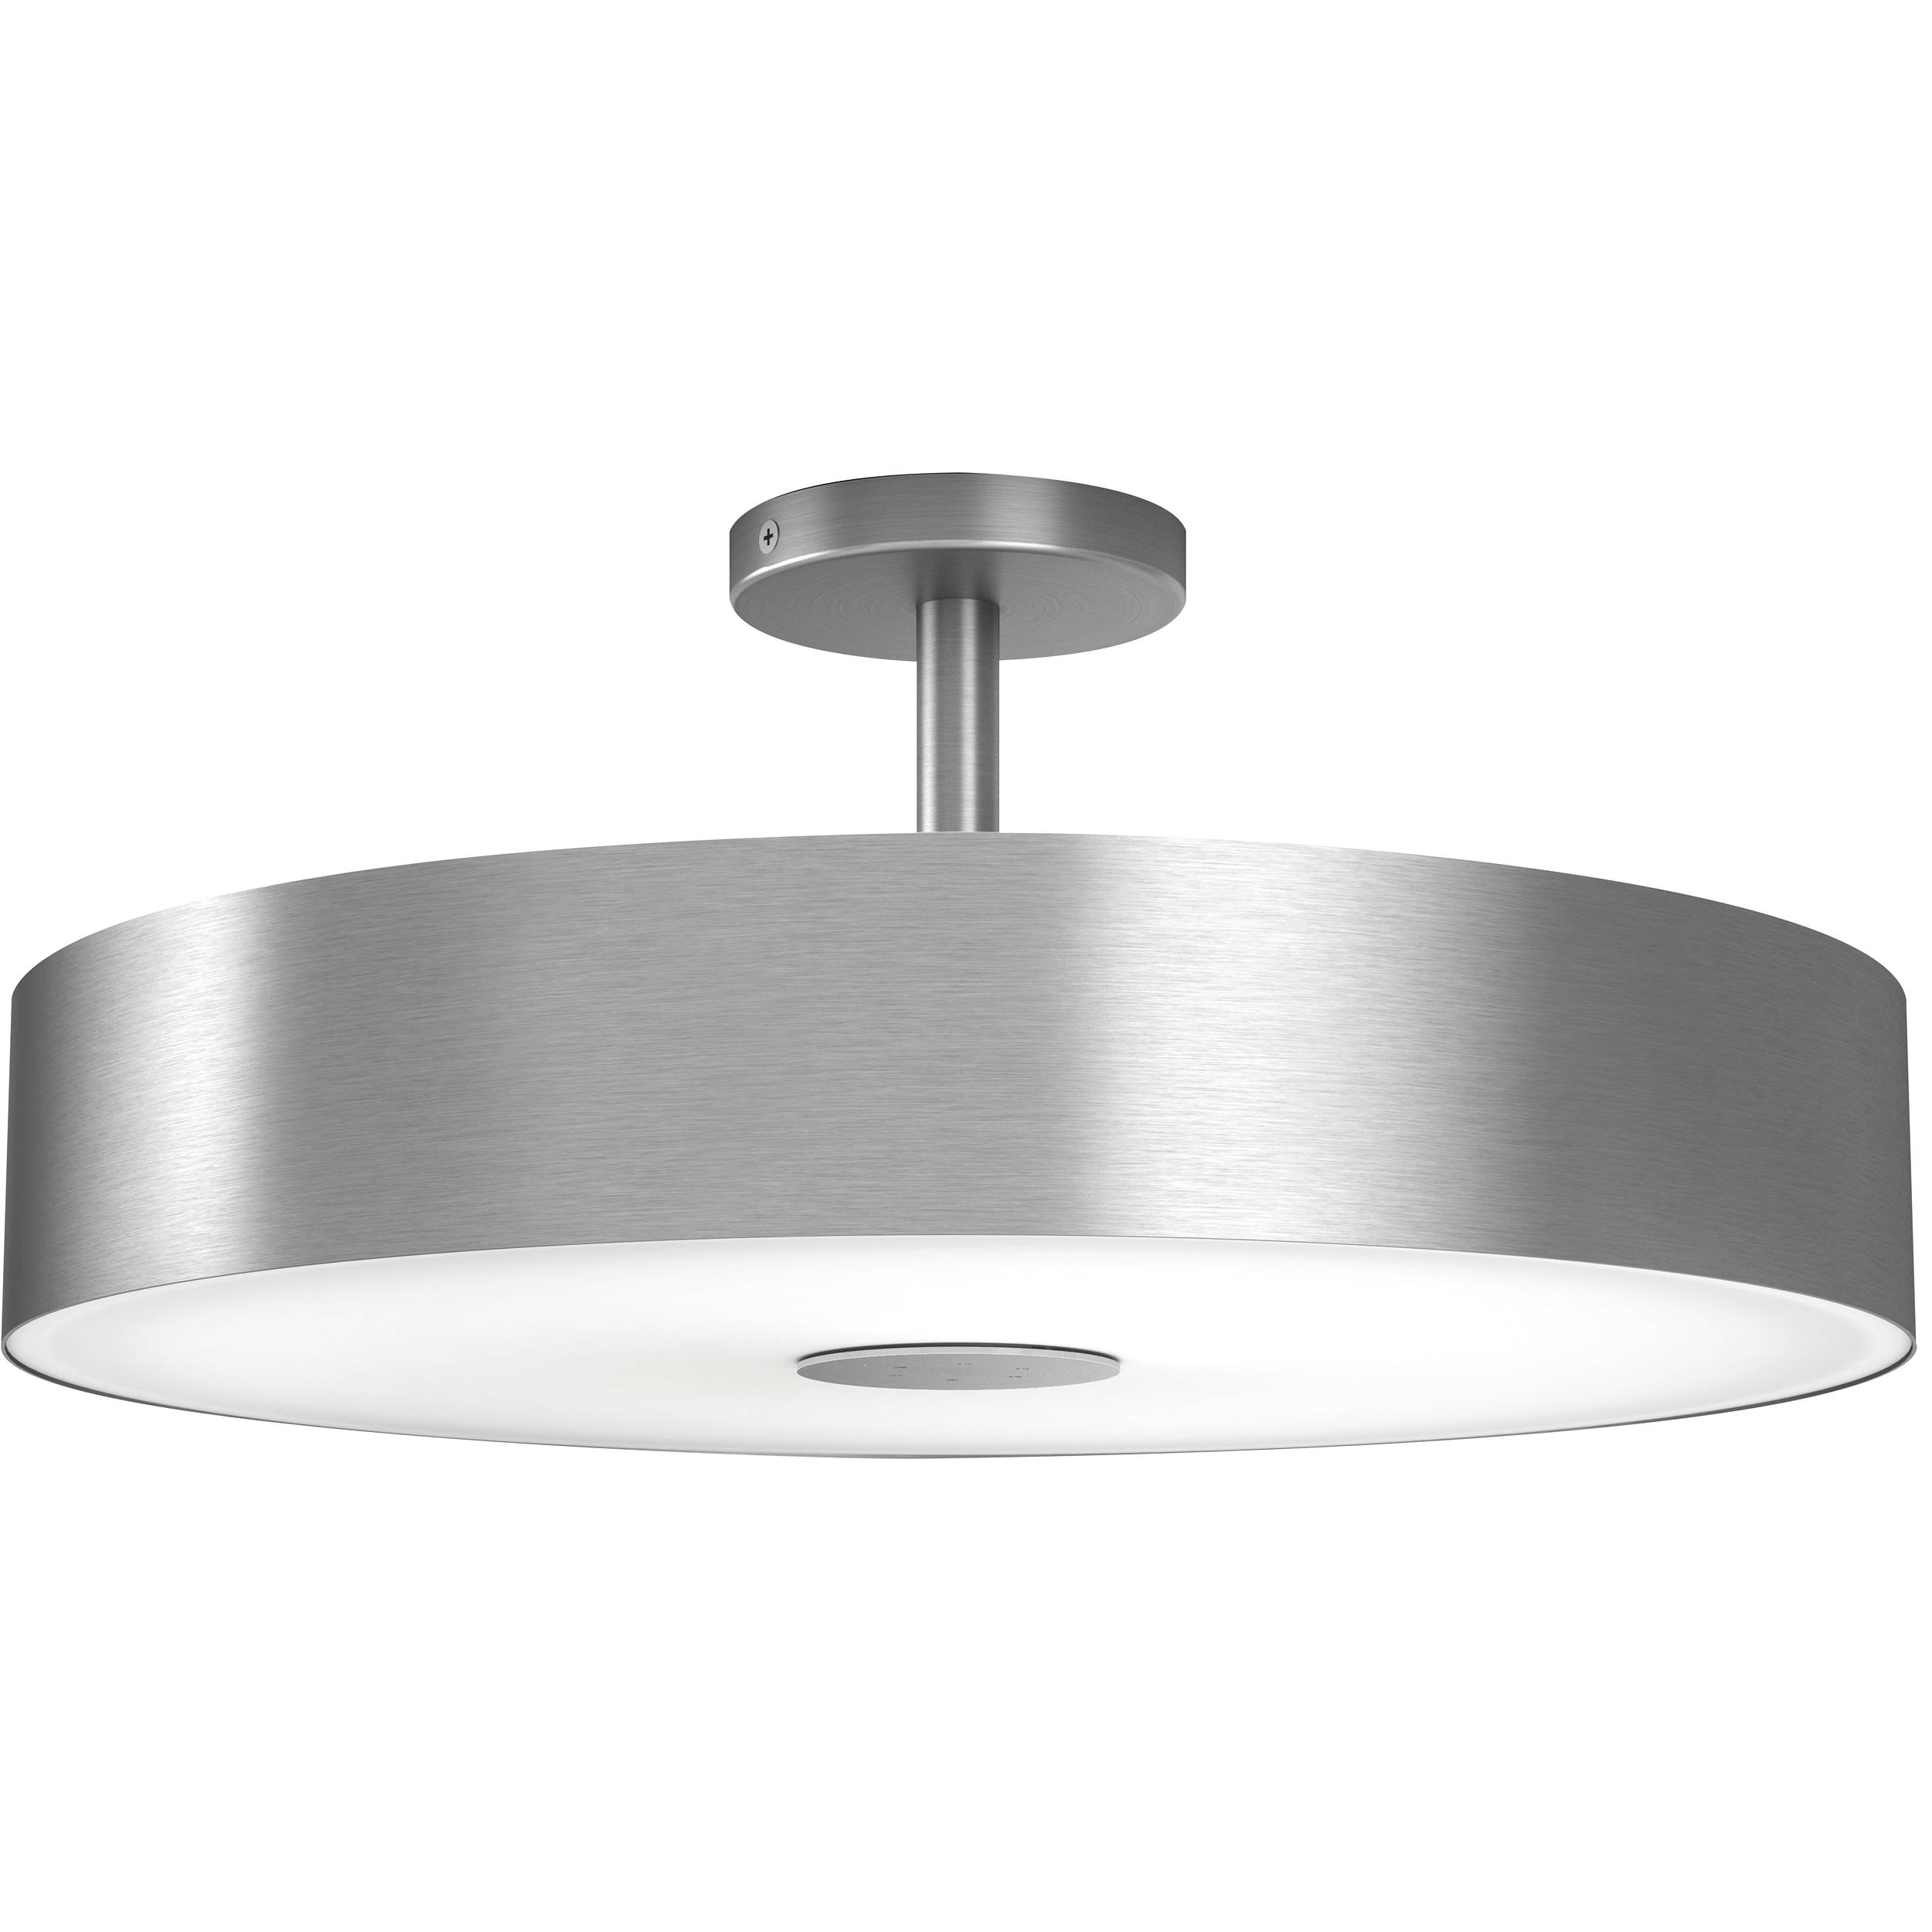 Avanceret Philips Hue Fair Ceiling Light (Semi Flush-Mount) 4100148U7 B&H JM34